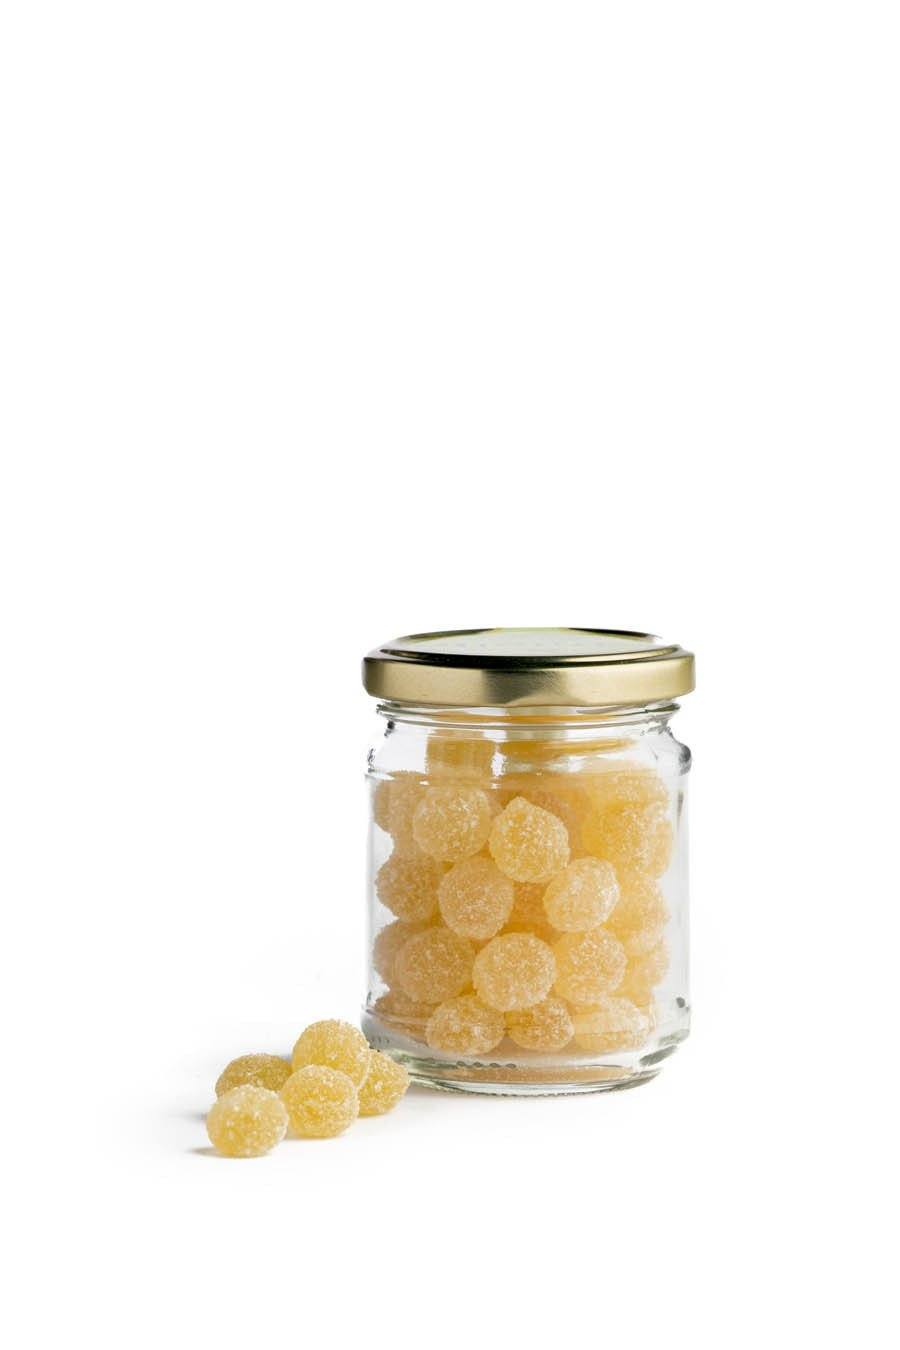 The Mielle Honey candy drops 120g